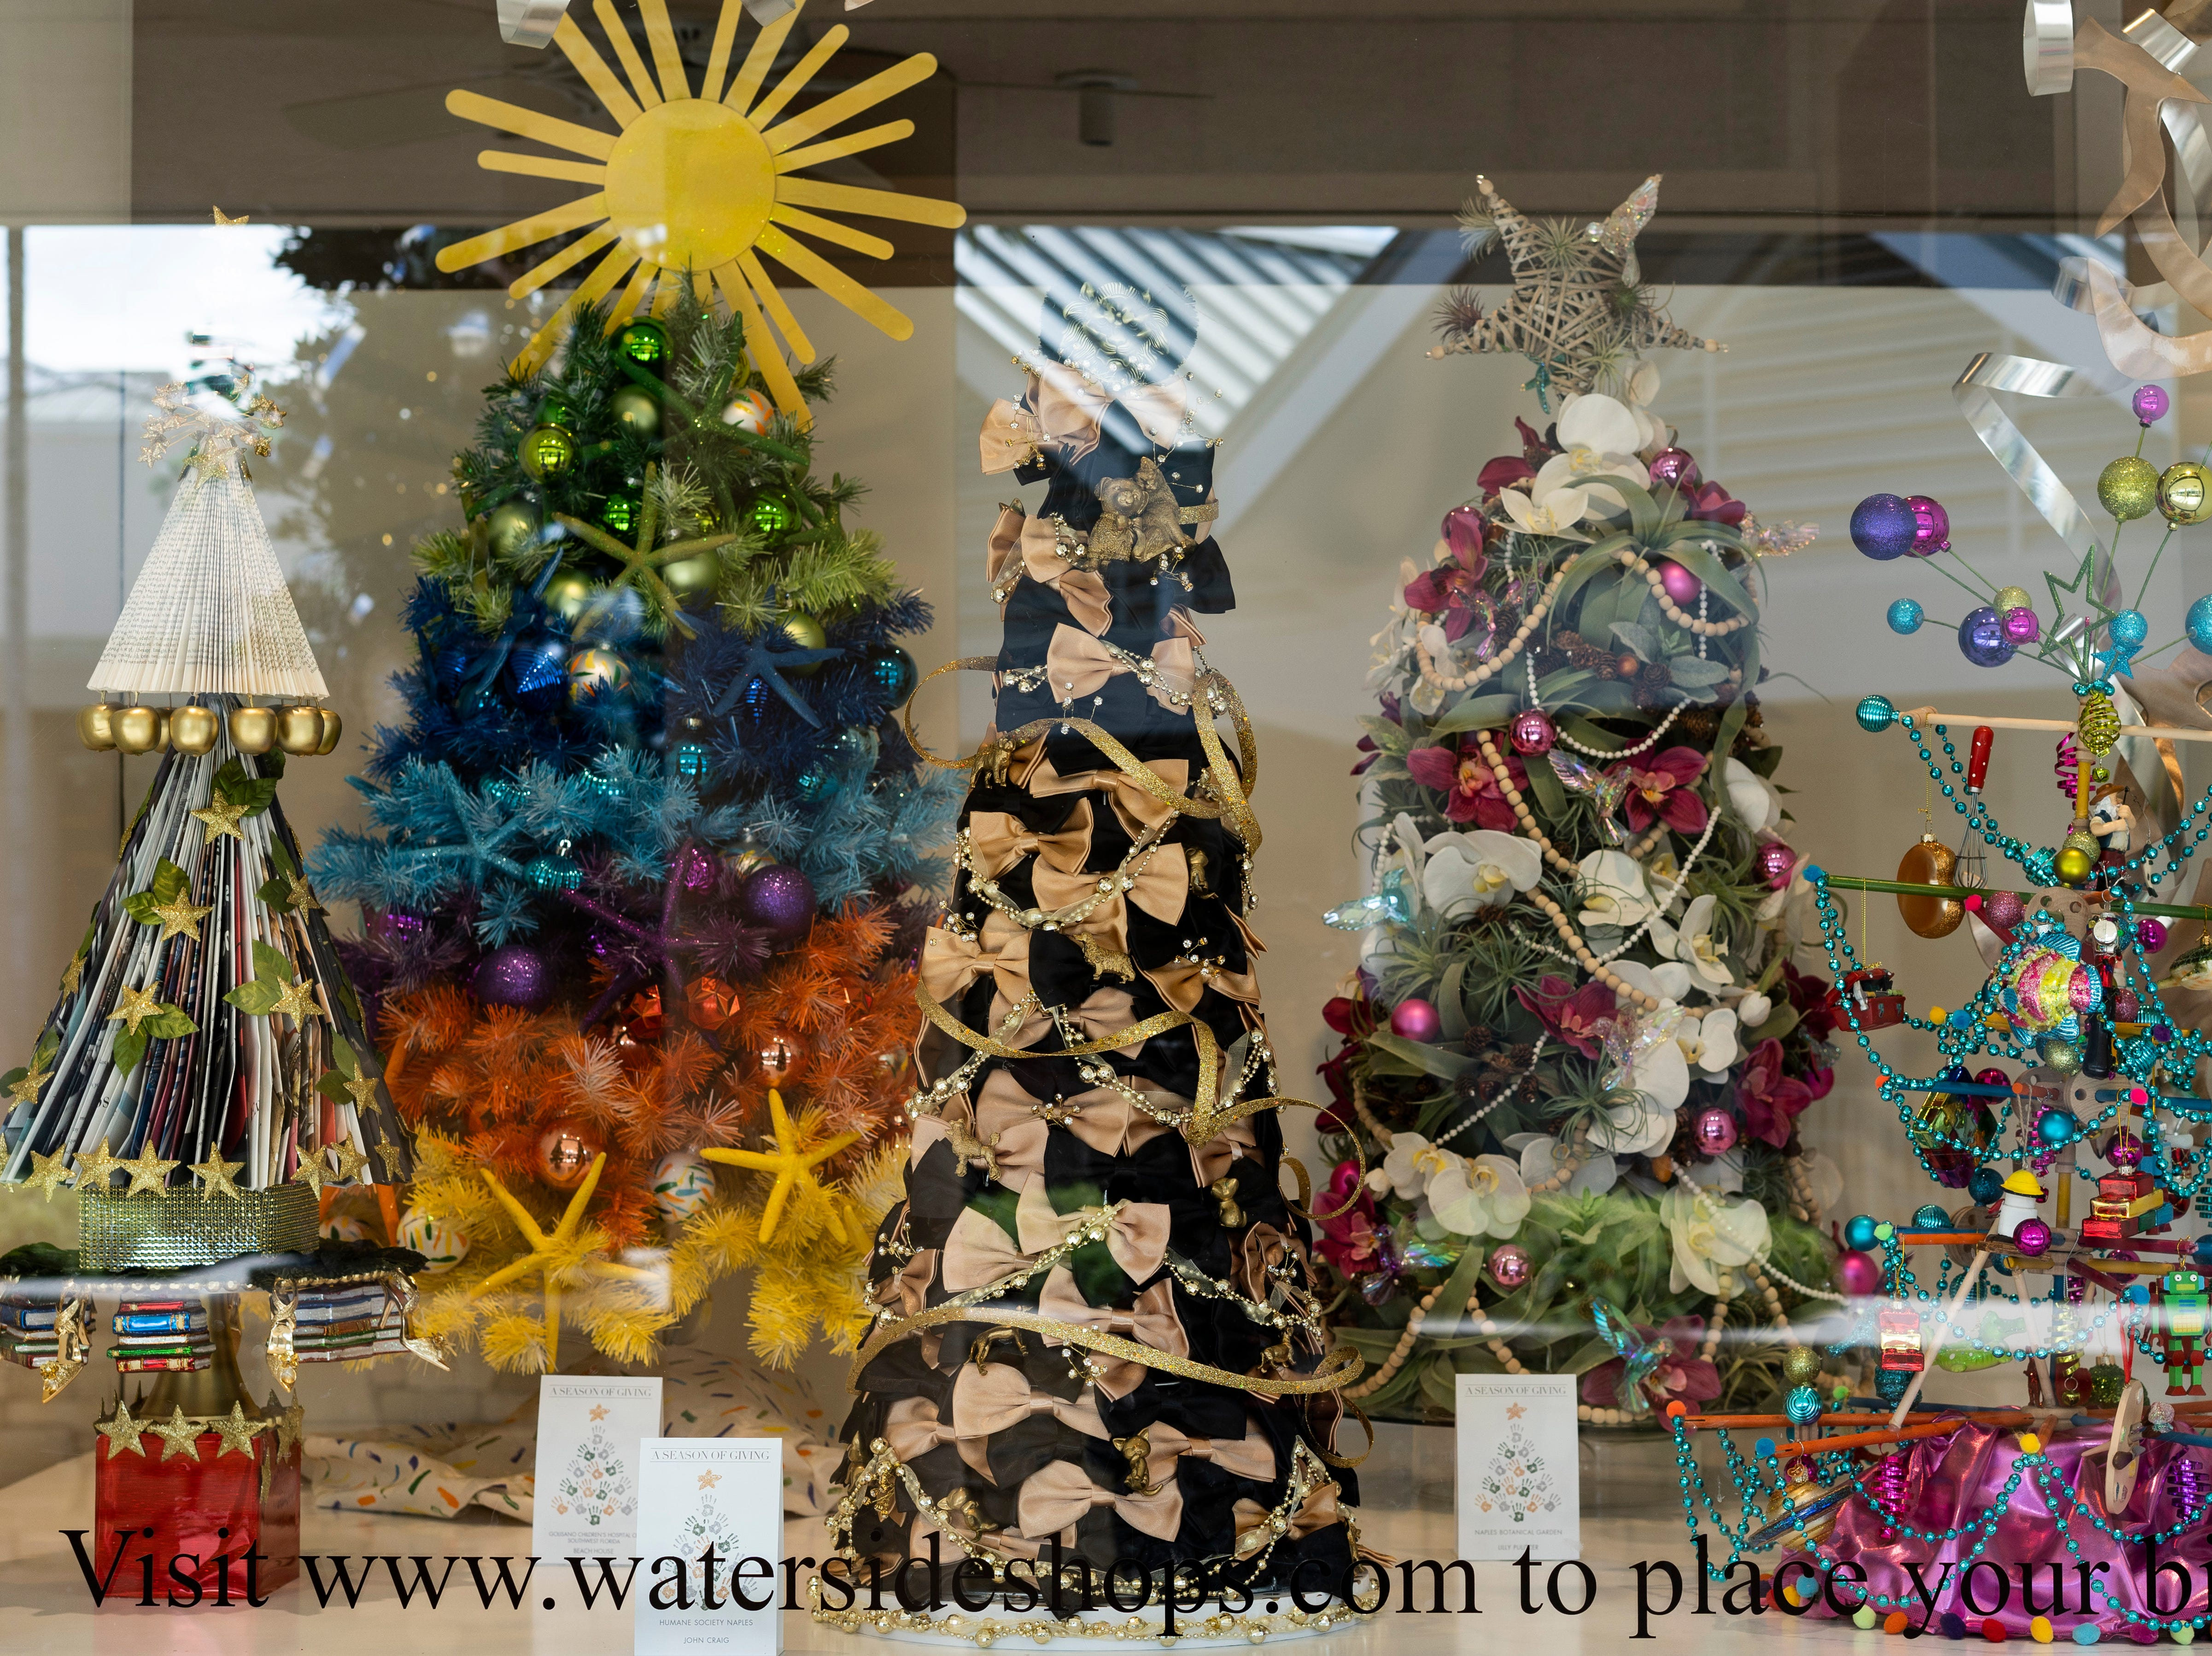 Naples' Waterside Shops is hosting A Season of Giving, which allows an interested bidder to place bids on any of 10 decorated Christmas trees displayed at the Waterside shops. Each tree supports a nonprofit organization in the Naples area partnered with a store at Waterside. The bidding and the display close on Thursday, Dec. 6, 2018.